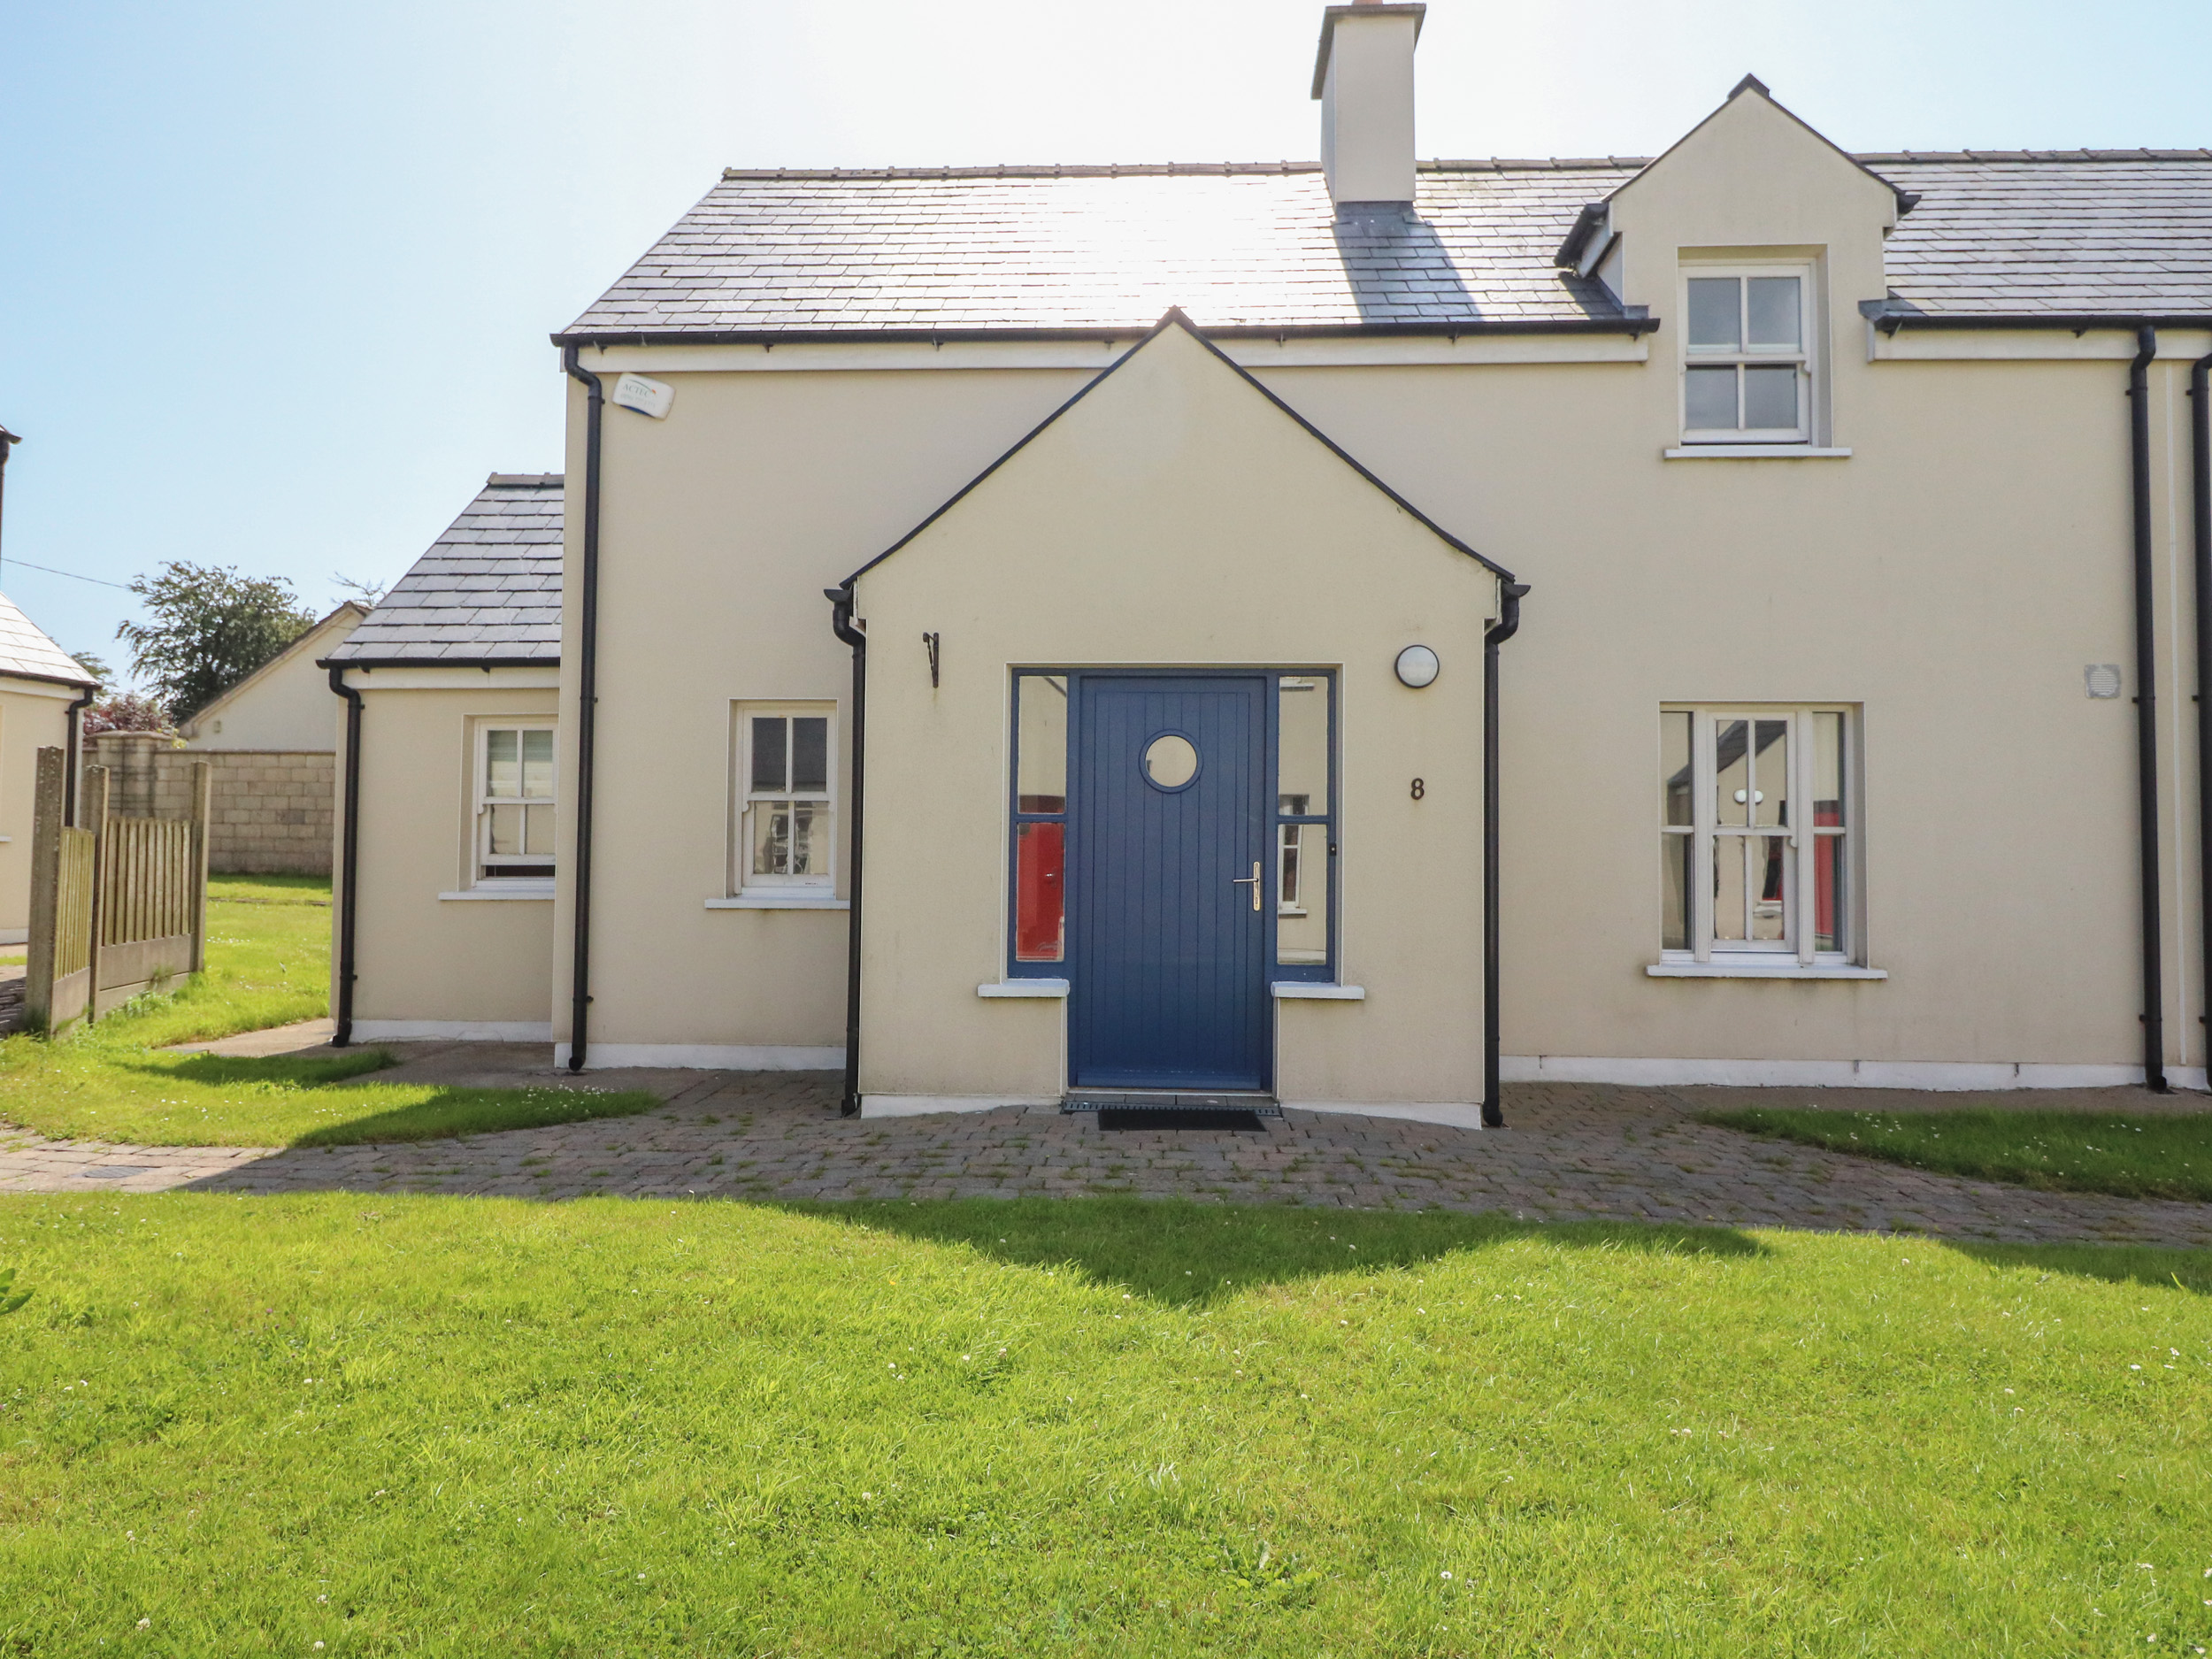 8 An Seanachai Holiday Homes, County Waterford